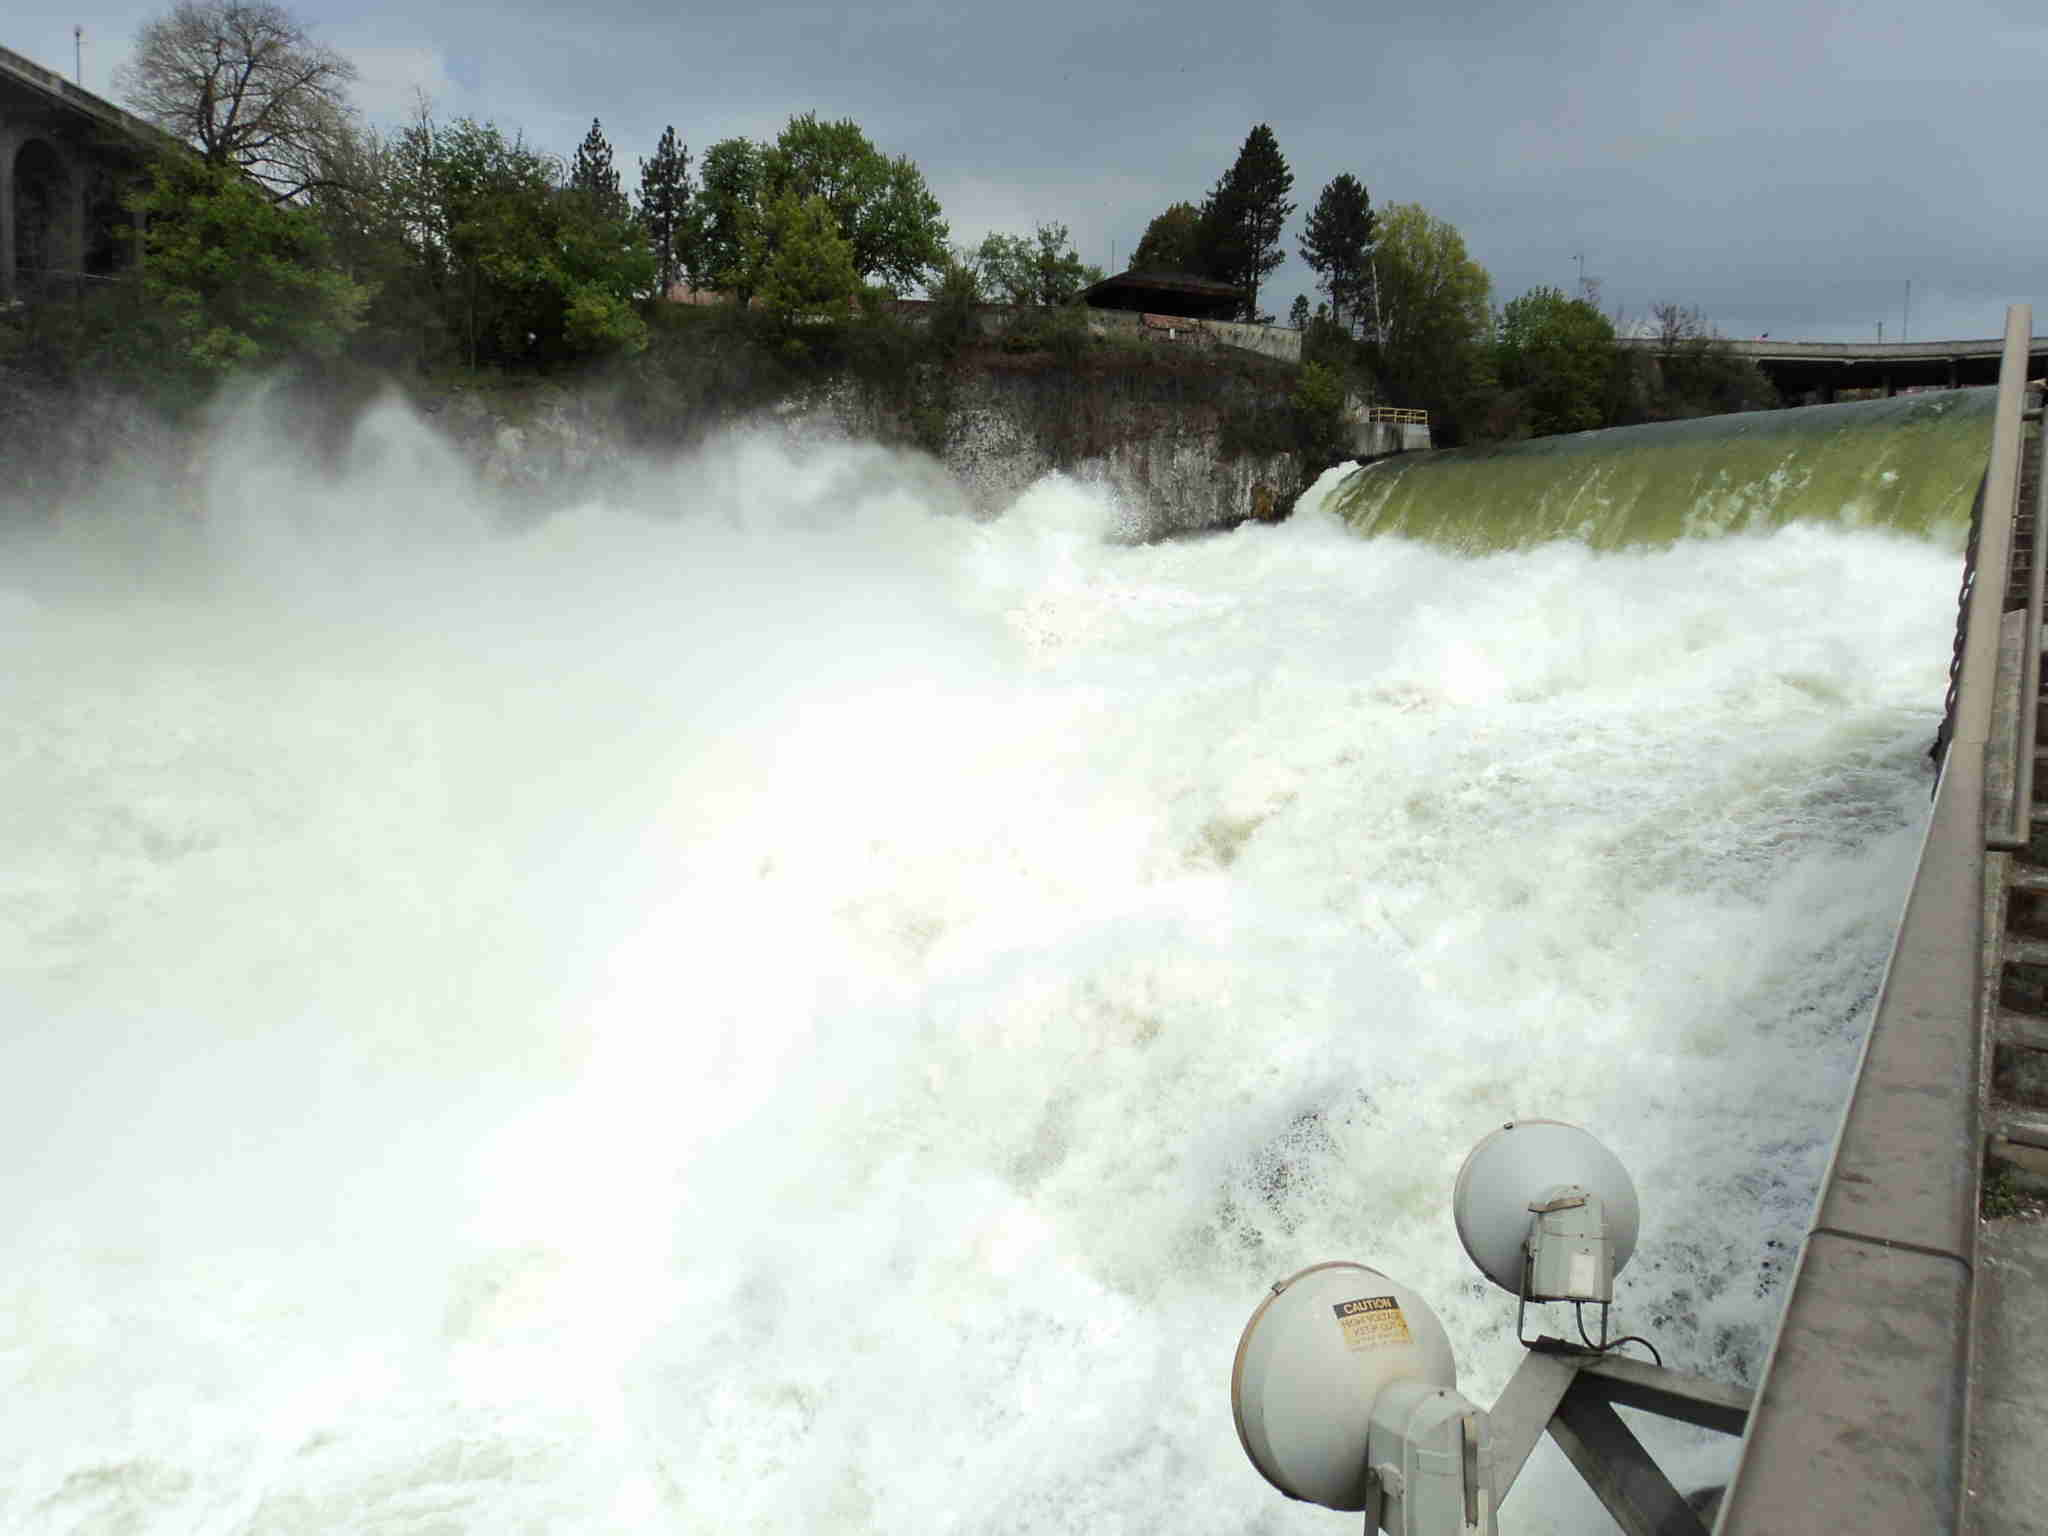 Main Drop of Spokane Falls